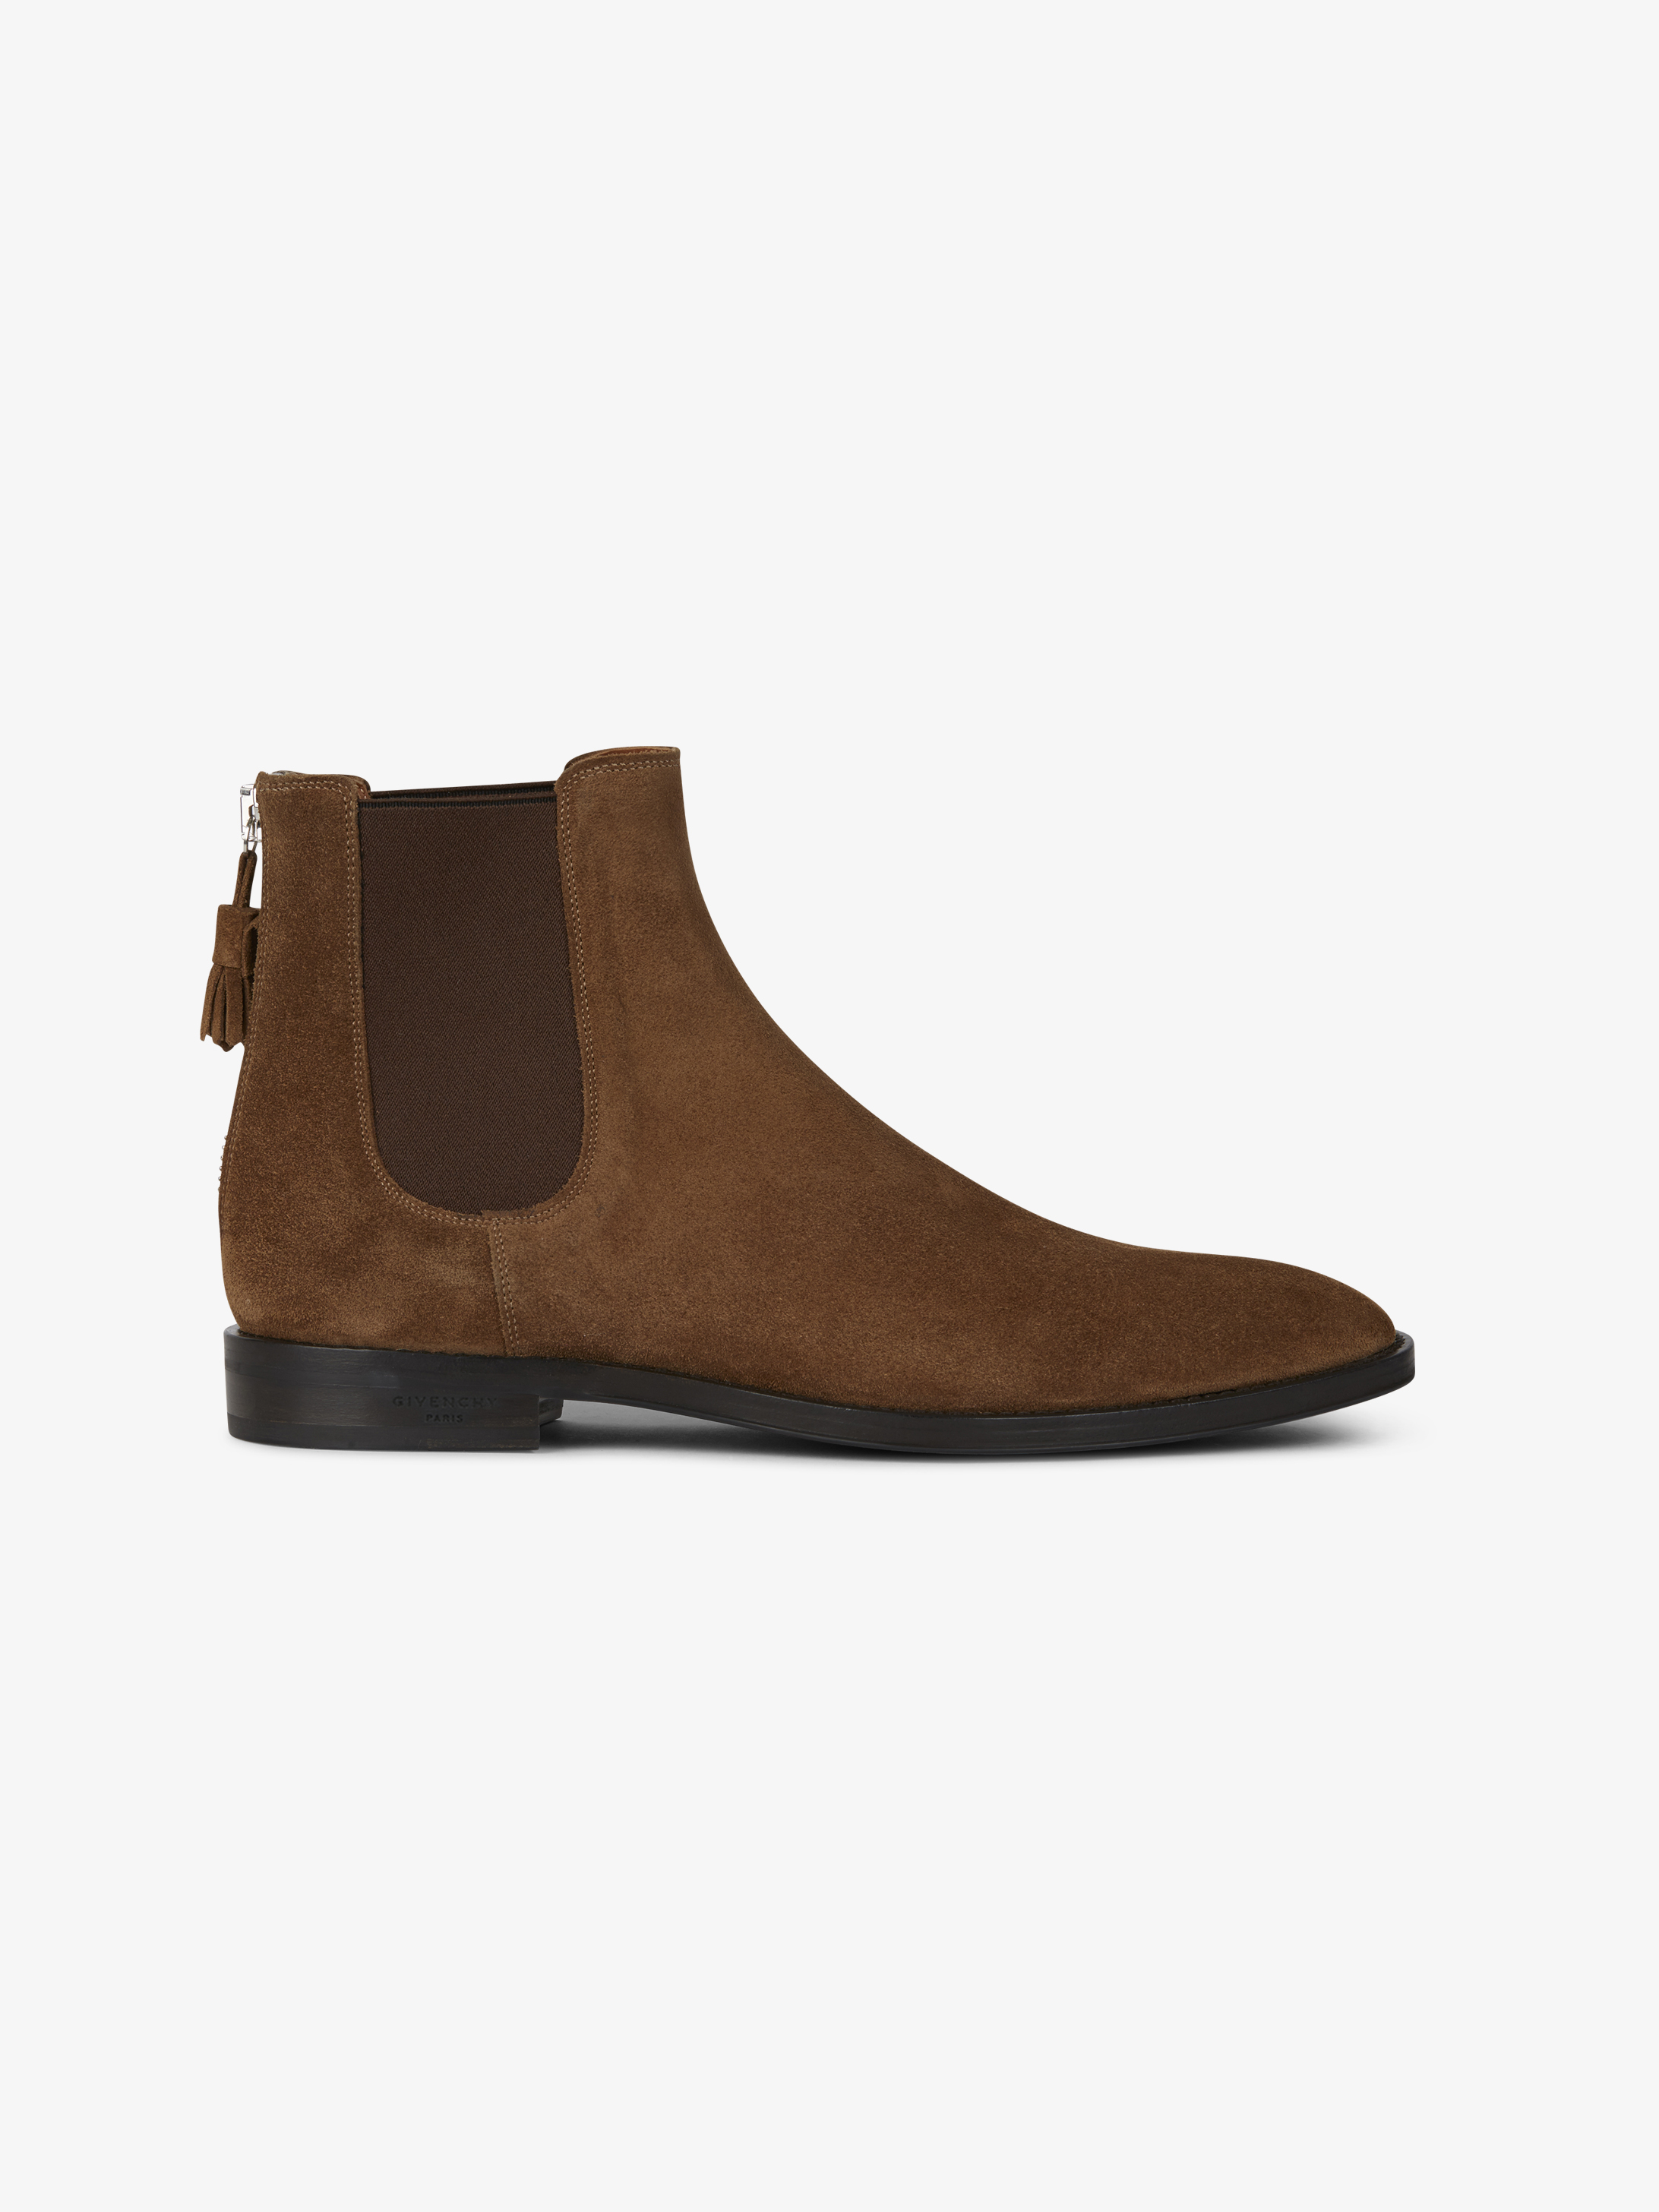 Suede boots with back zip